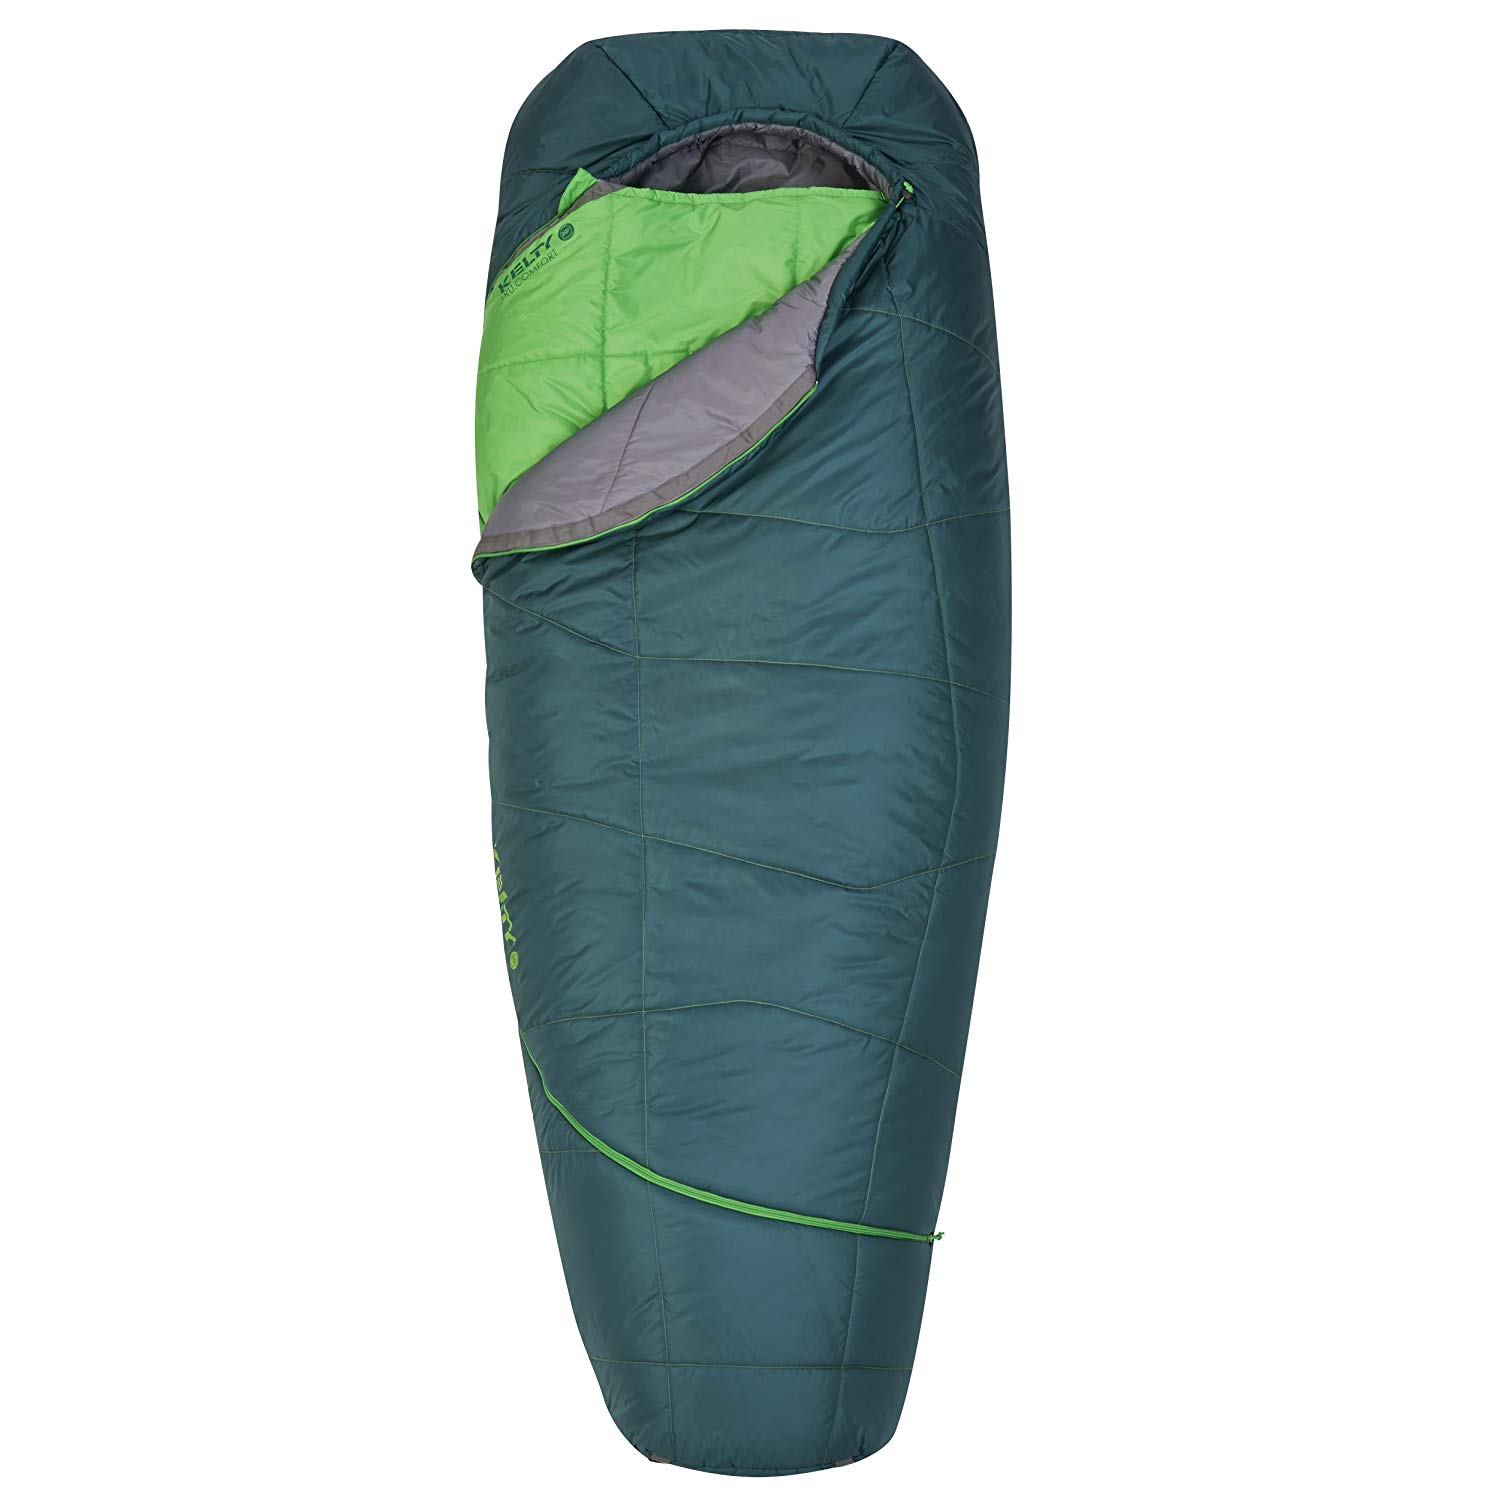 An image of Kelty Tru Comfort Women's Polyester Taffeta Sleeping Bag